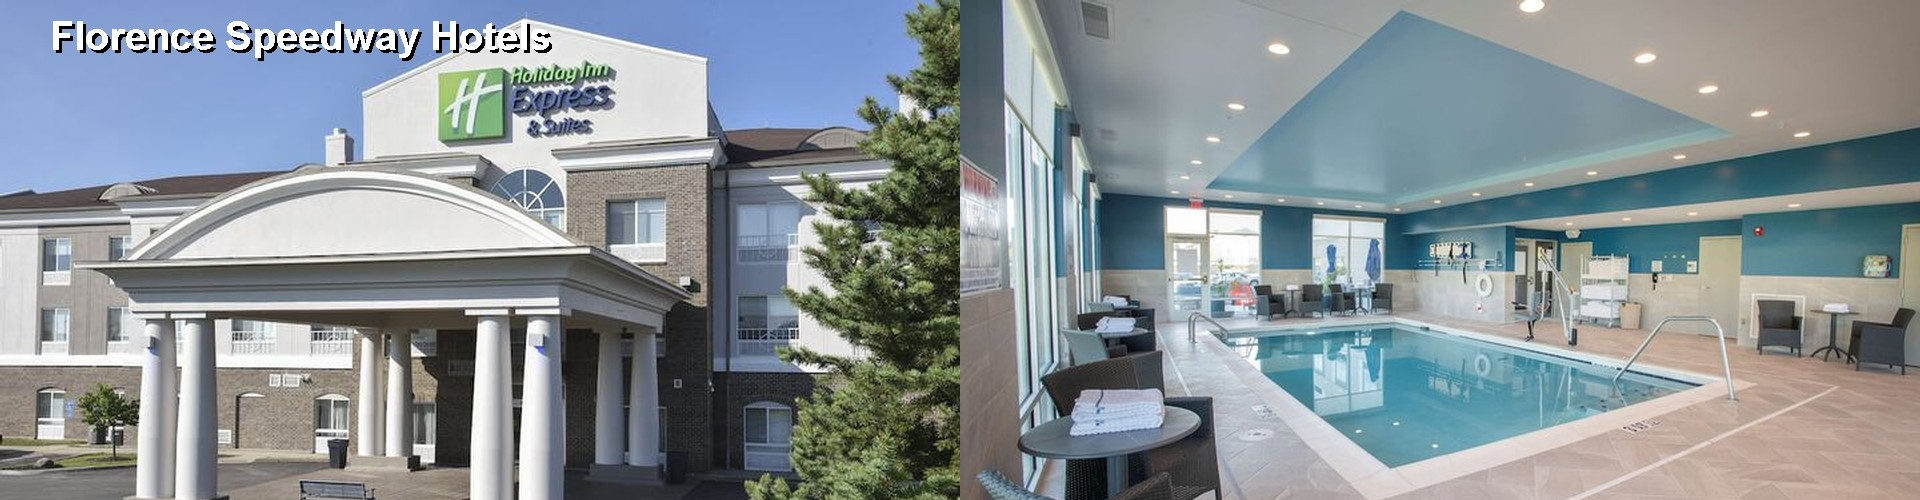 58 Hotels Near Florence Sdway In Walton Ky